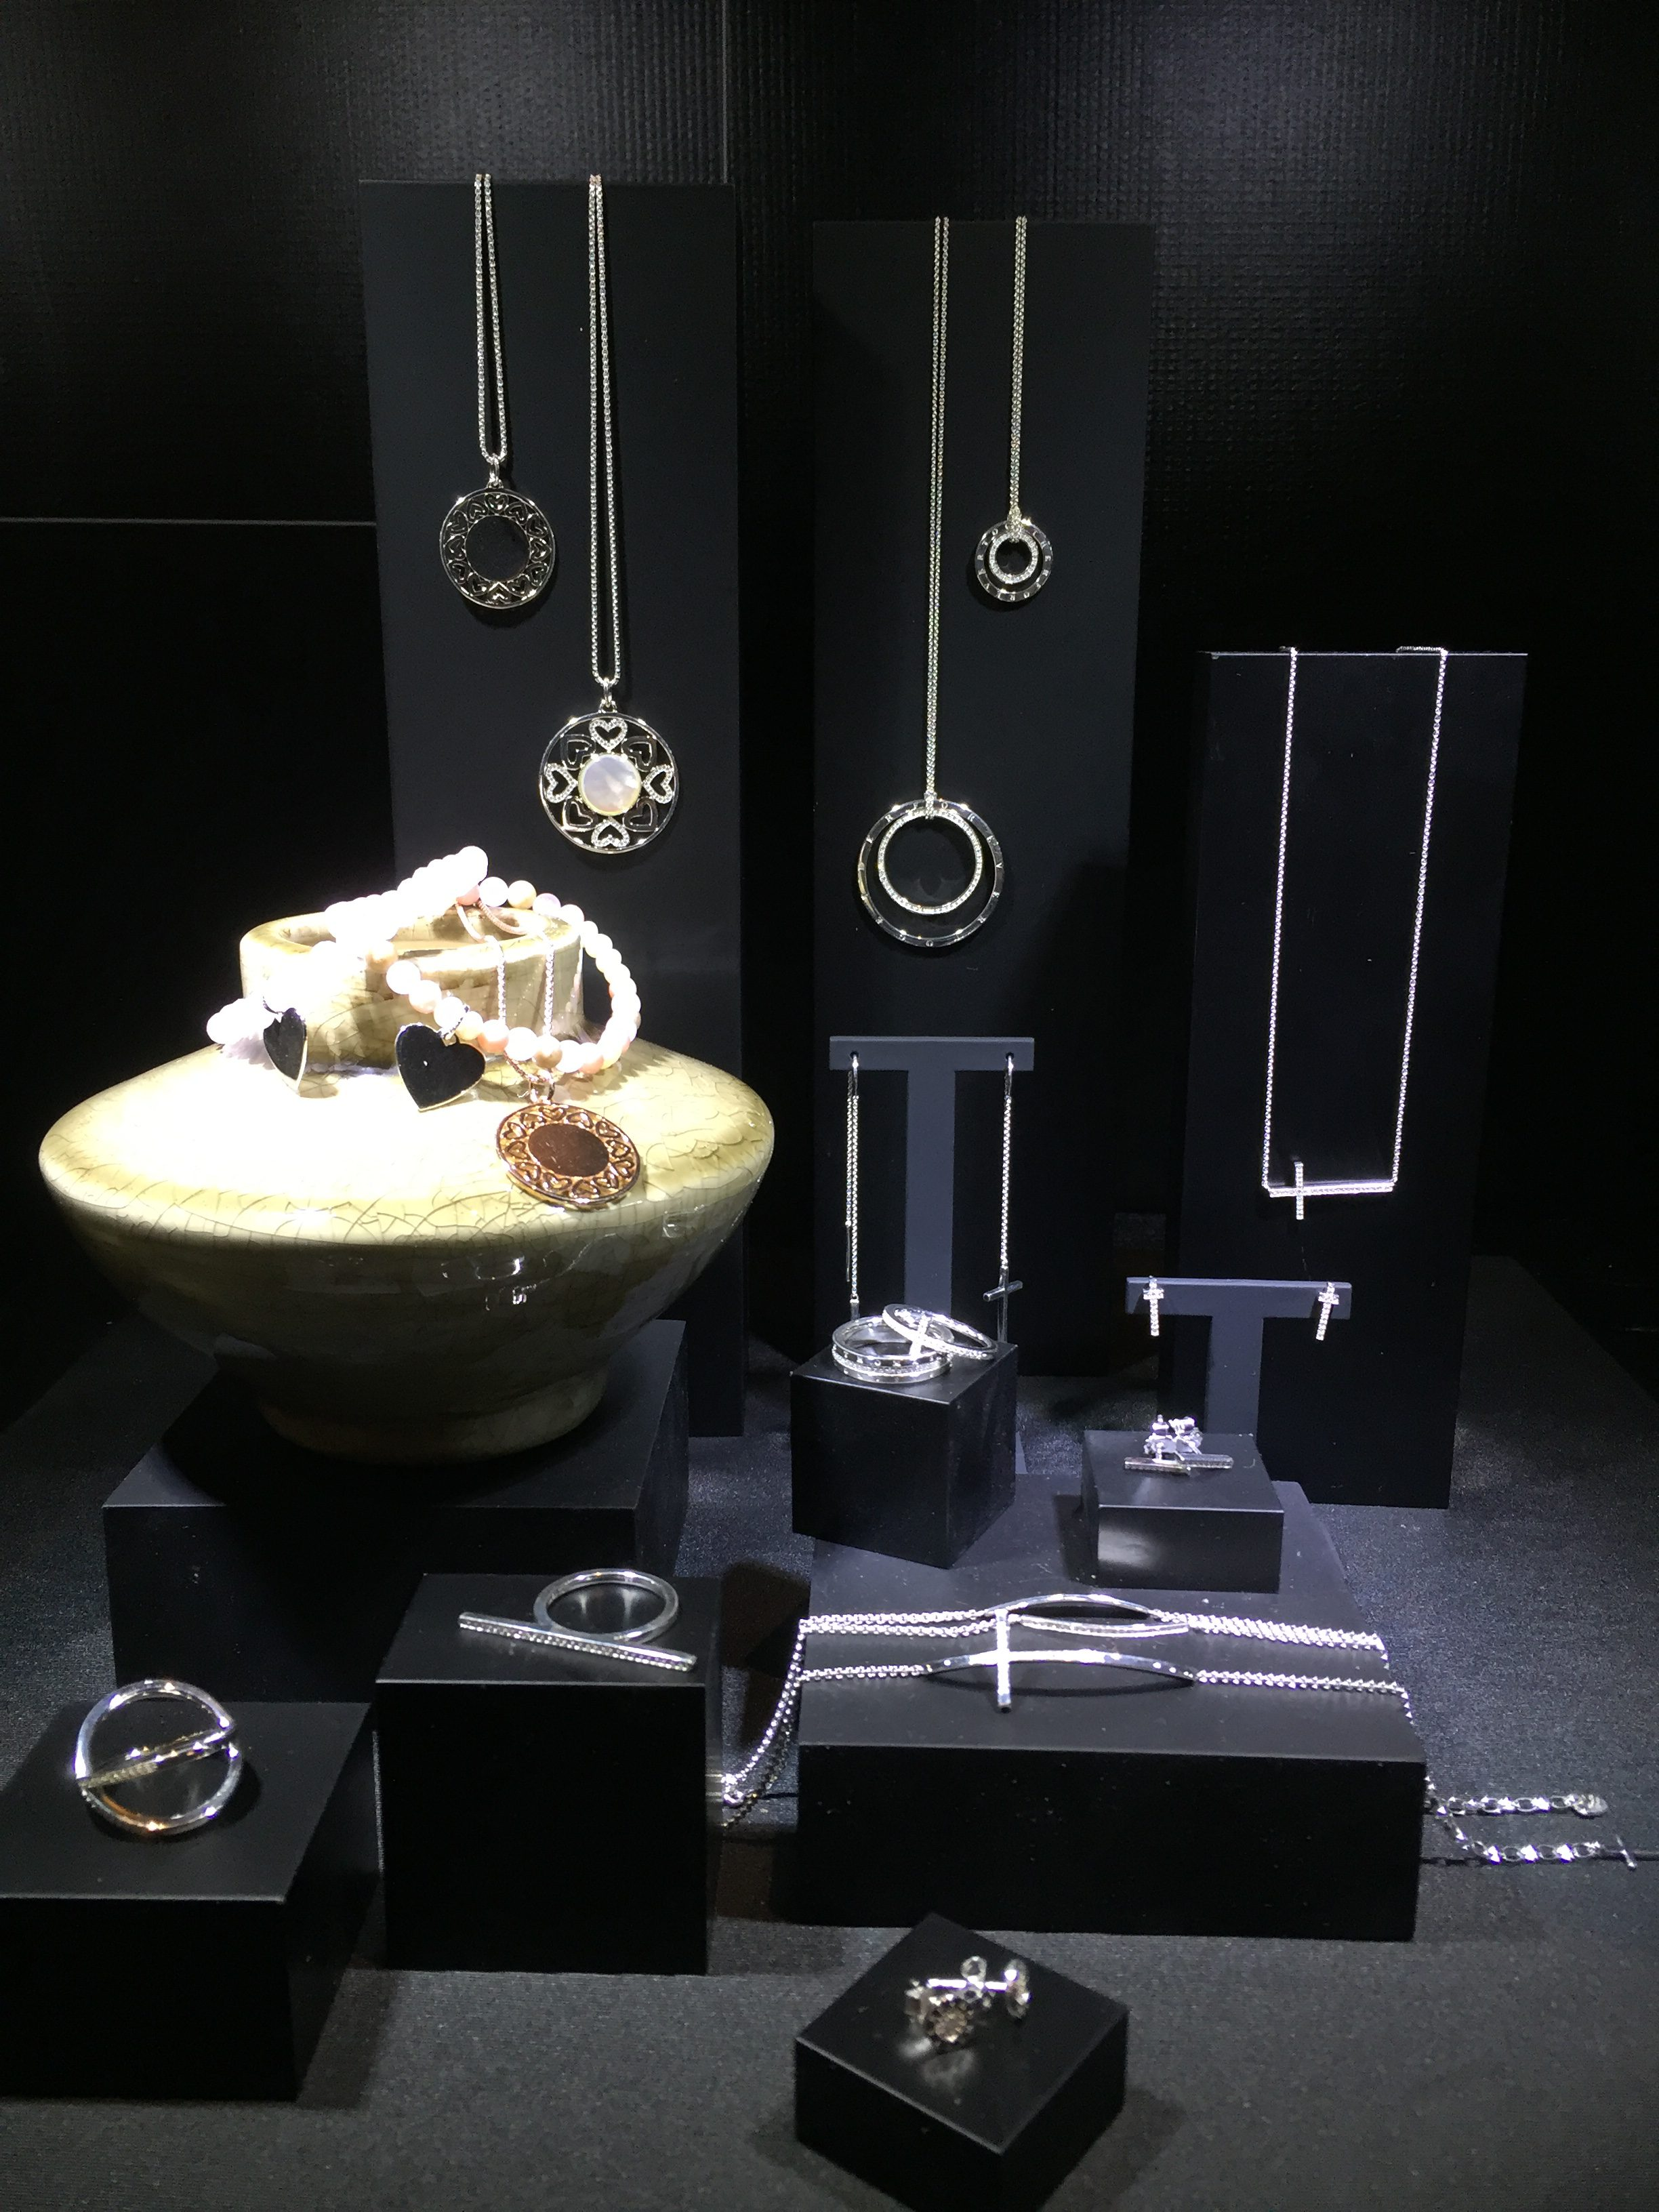 Keeping a simple decoration the jewelry display, for yet another Spring/Summer collection from Thomas Sabo.